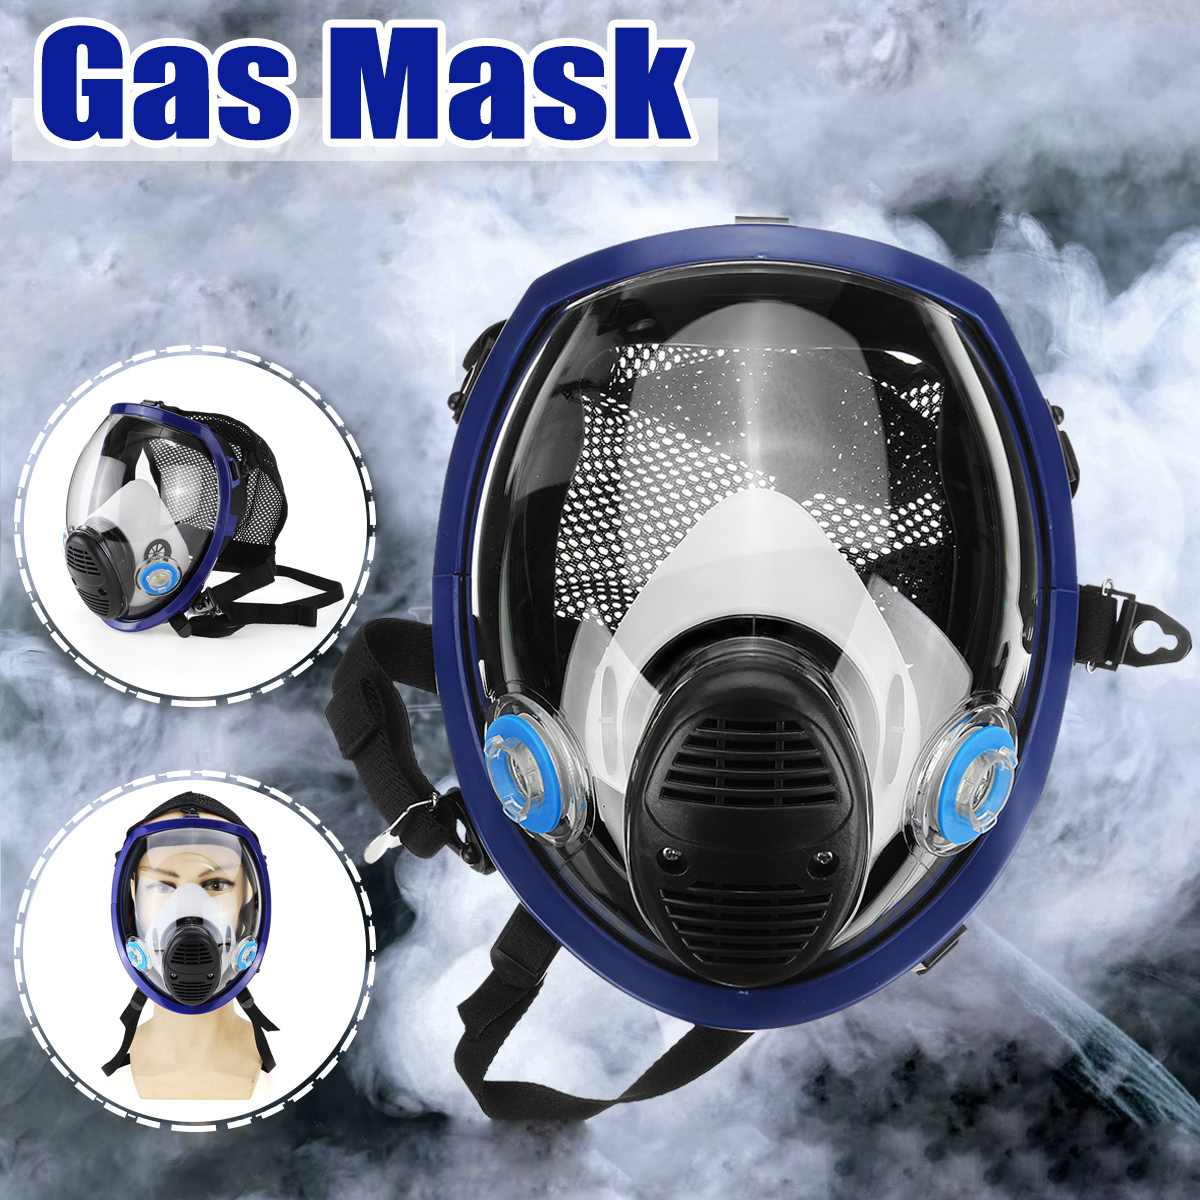 6800 For3M Full Face Chemical Mask Gas Mask Acid Dust Respirator Paint Pesticide Spray Silicone Filter Laboratory Welding